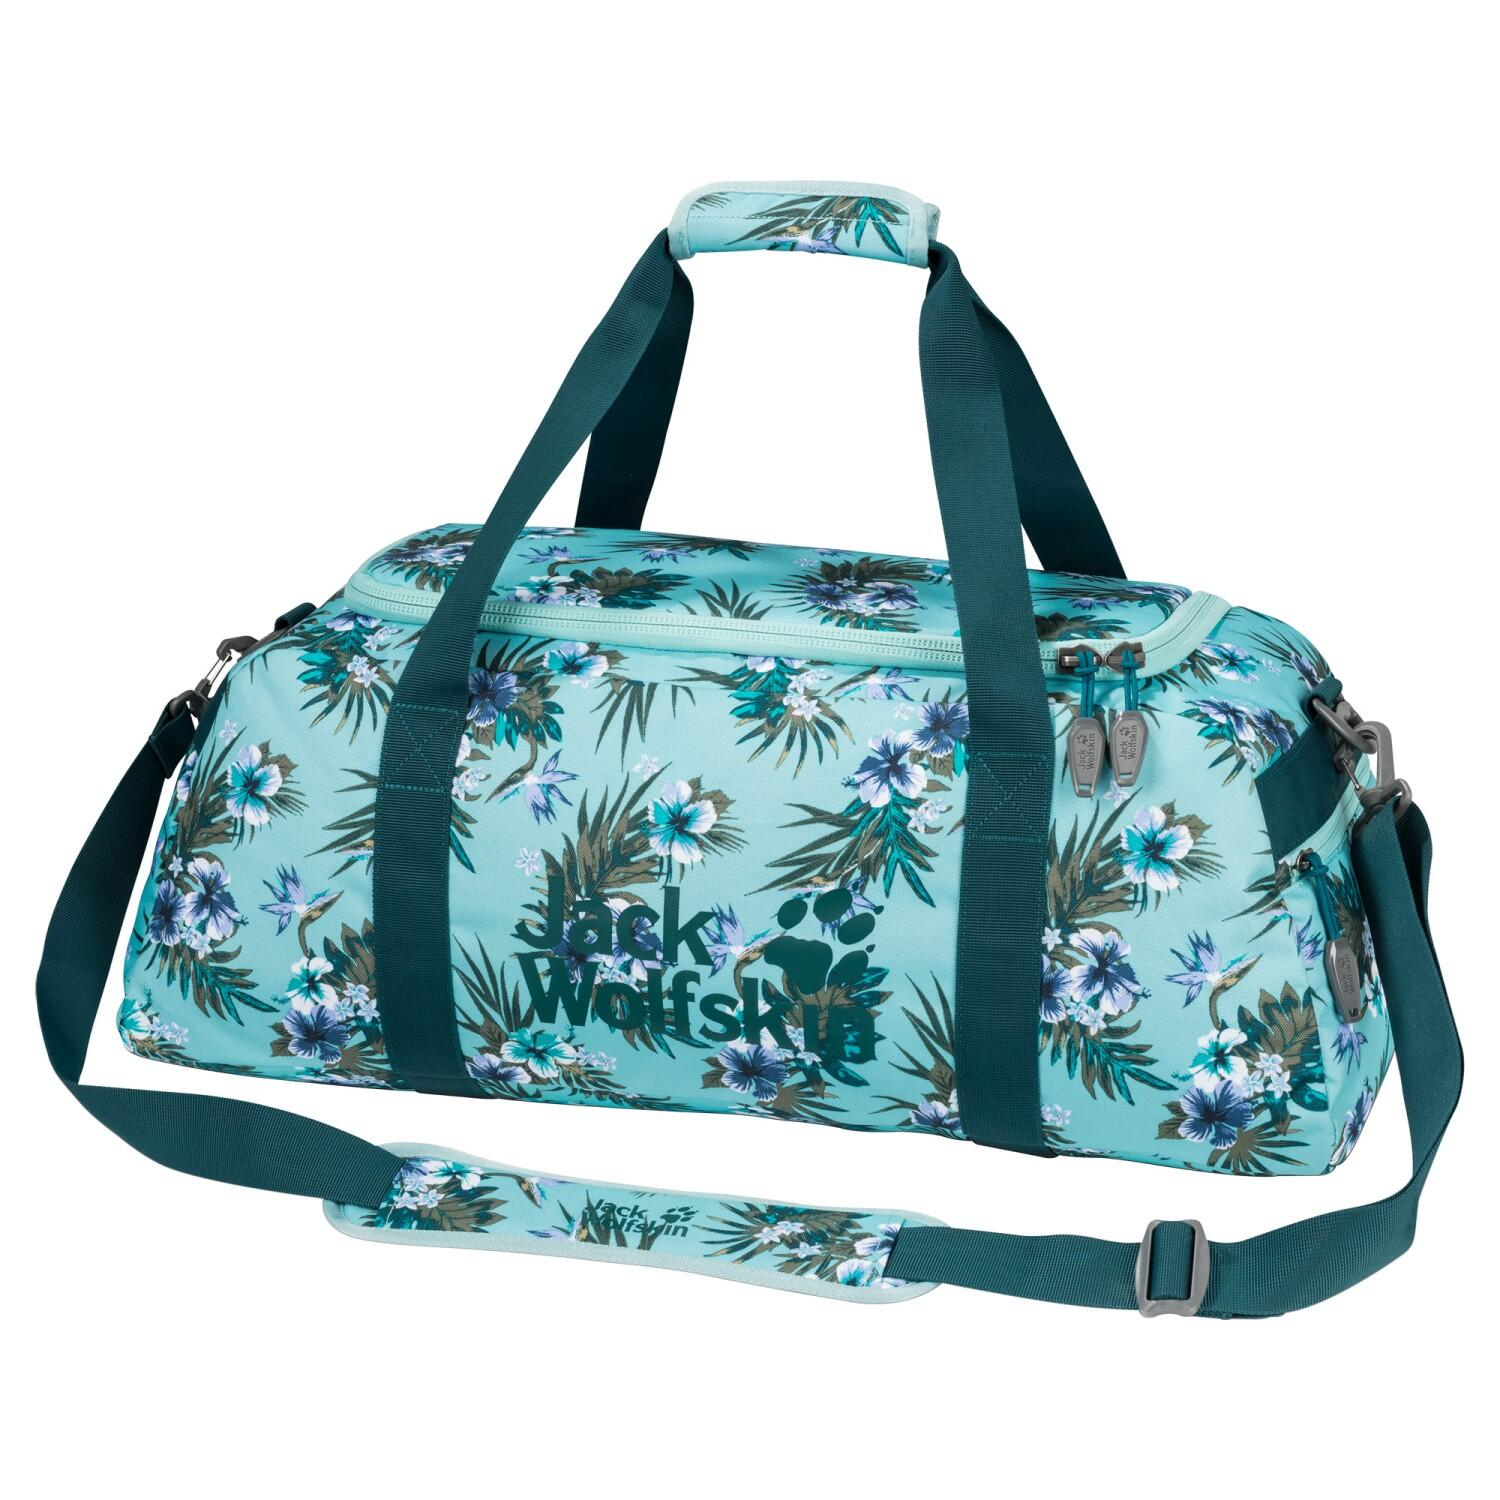 jack-wolfskin-action-bag-35-sporttasche-farbe-8019-tropical-blue-